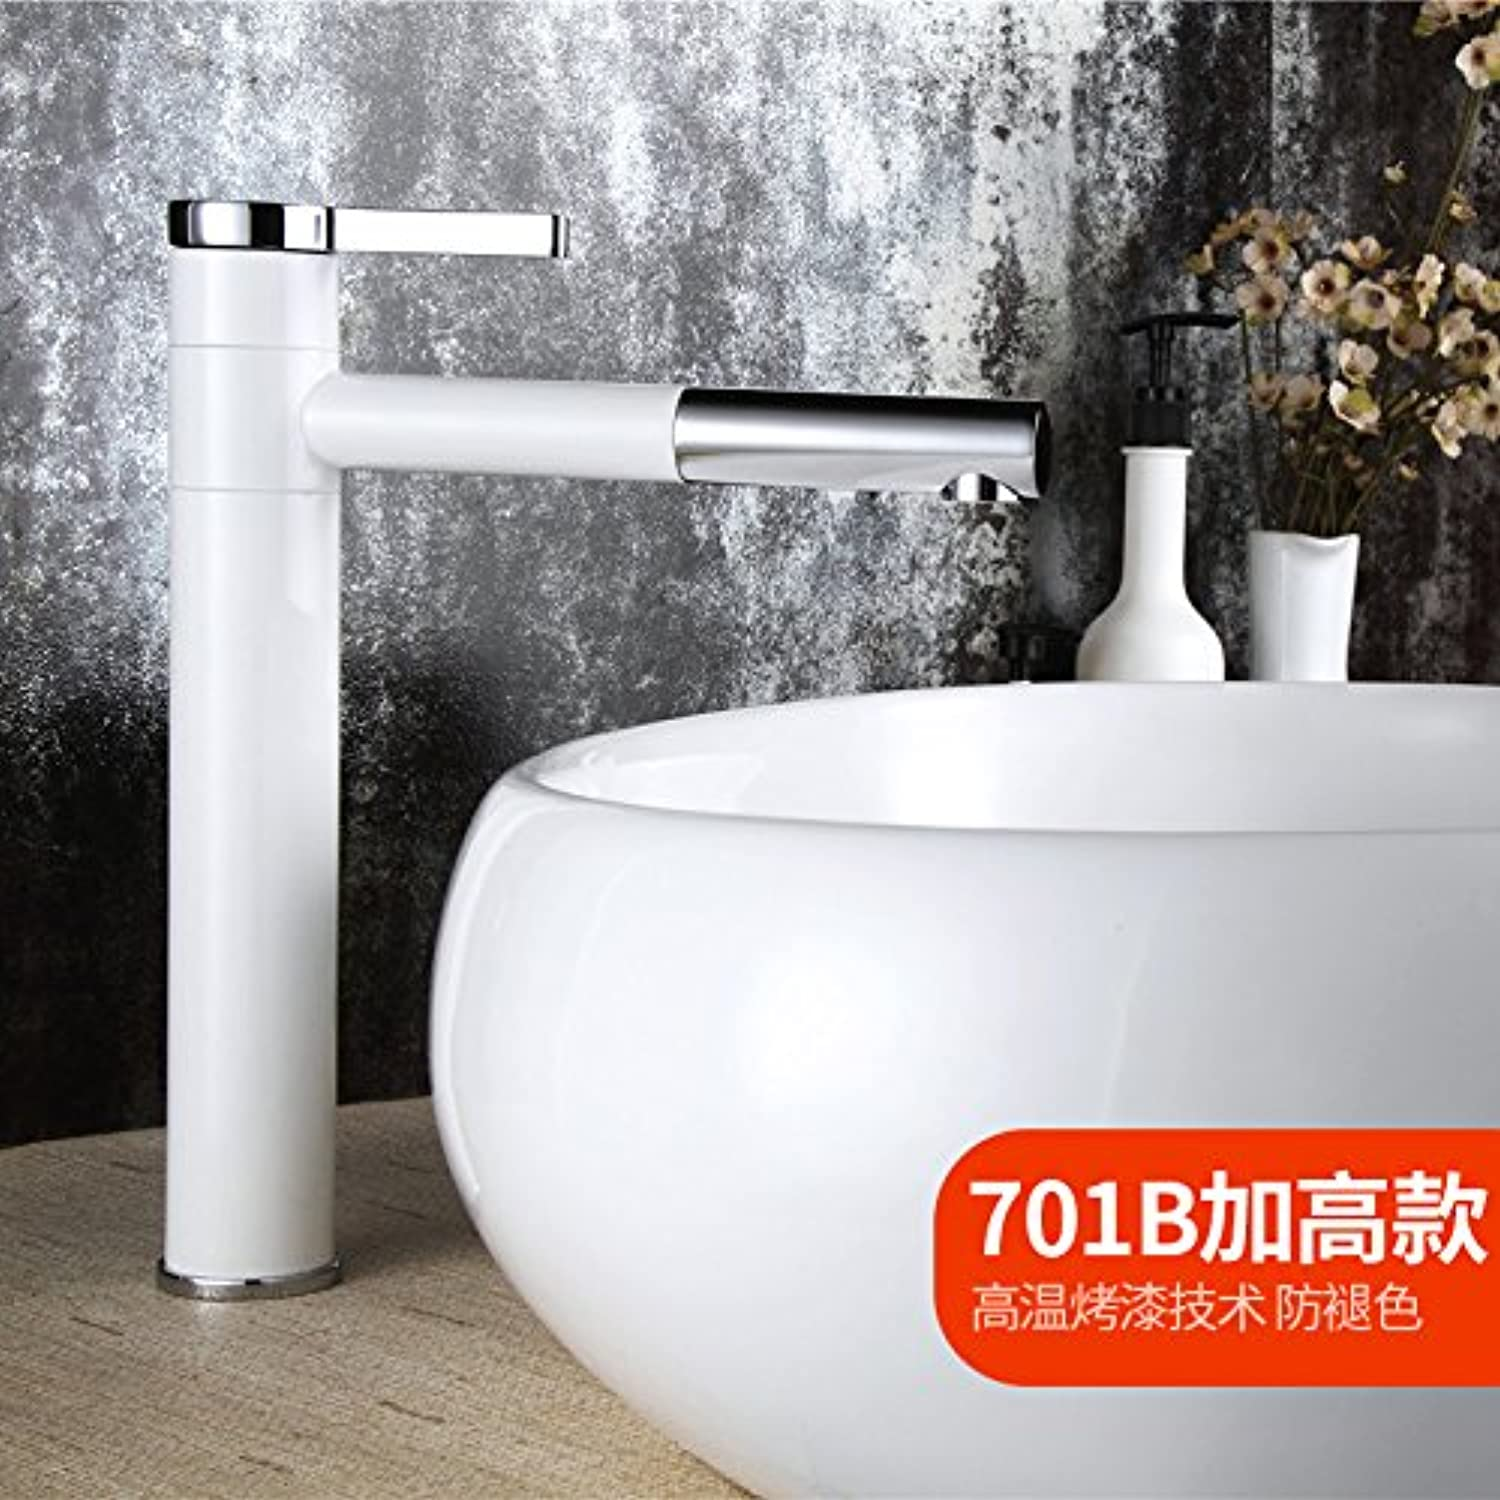 LHbox Basin Mixer Tap Mu opera toilet basin mixer basin sinks brass single handle single hole Cold Water Grill white paint mixer,701B grilled white paint plus high) basin mixer